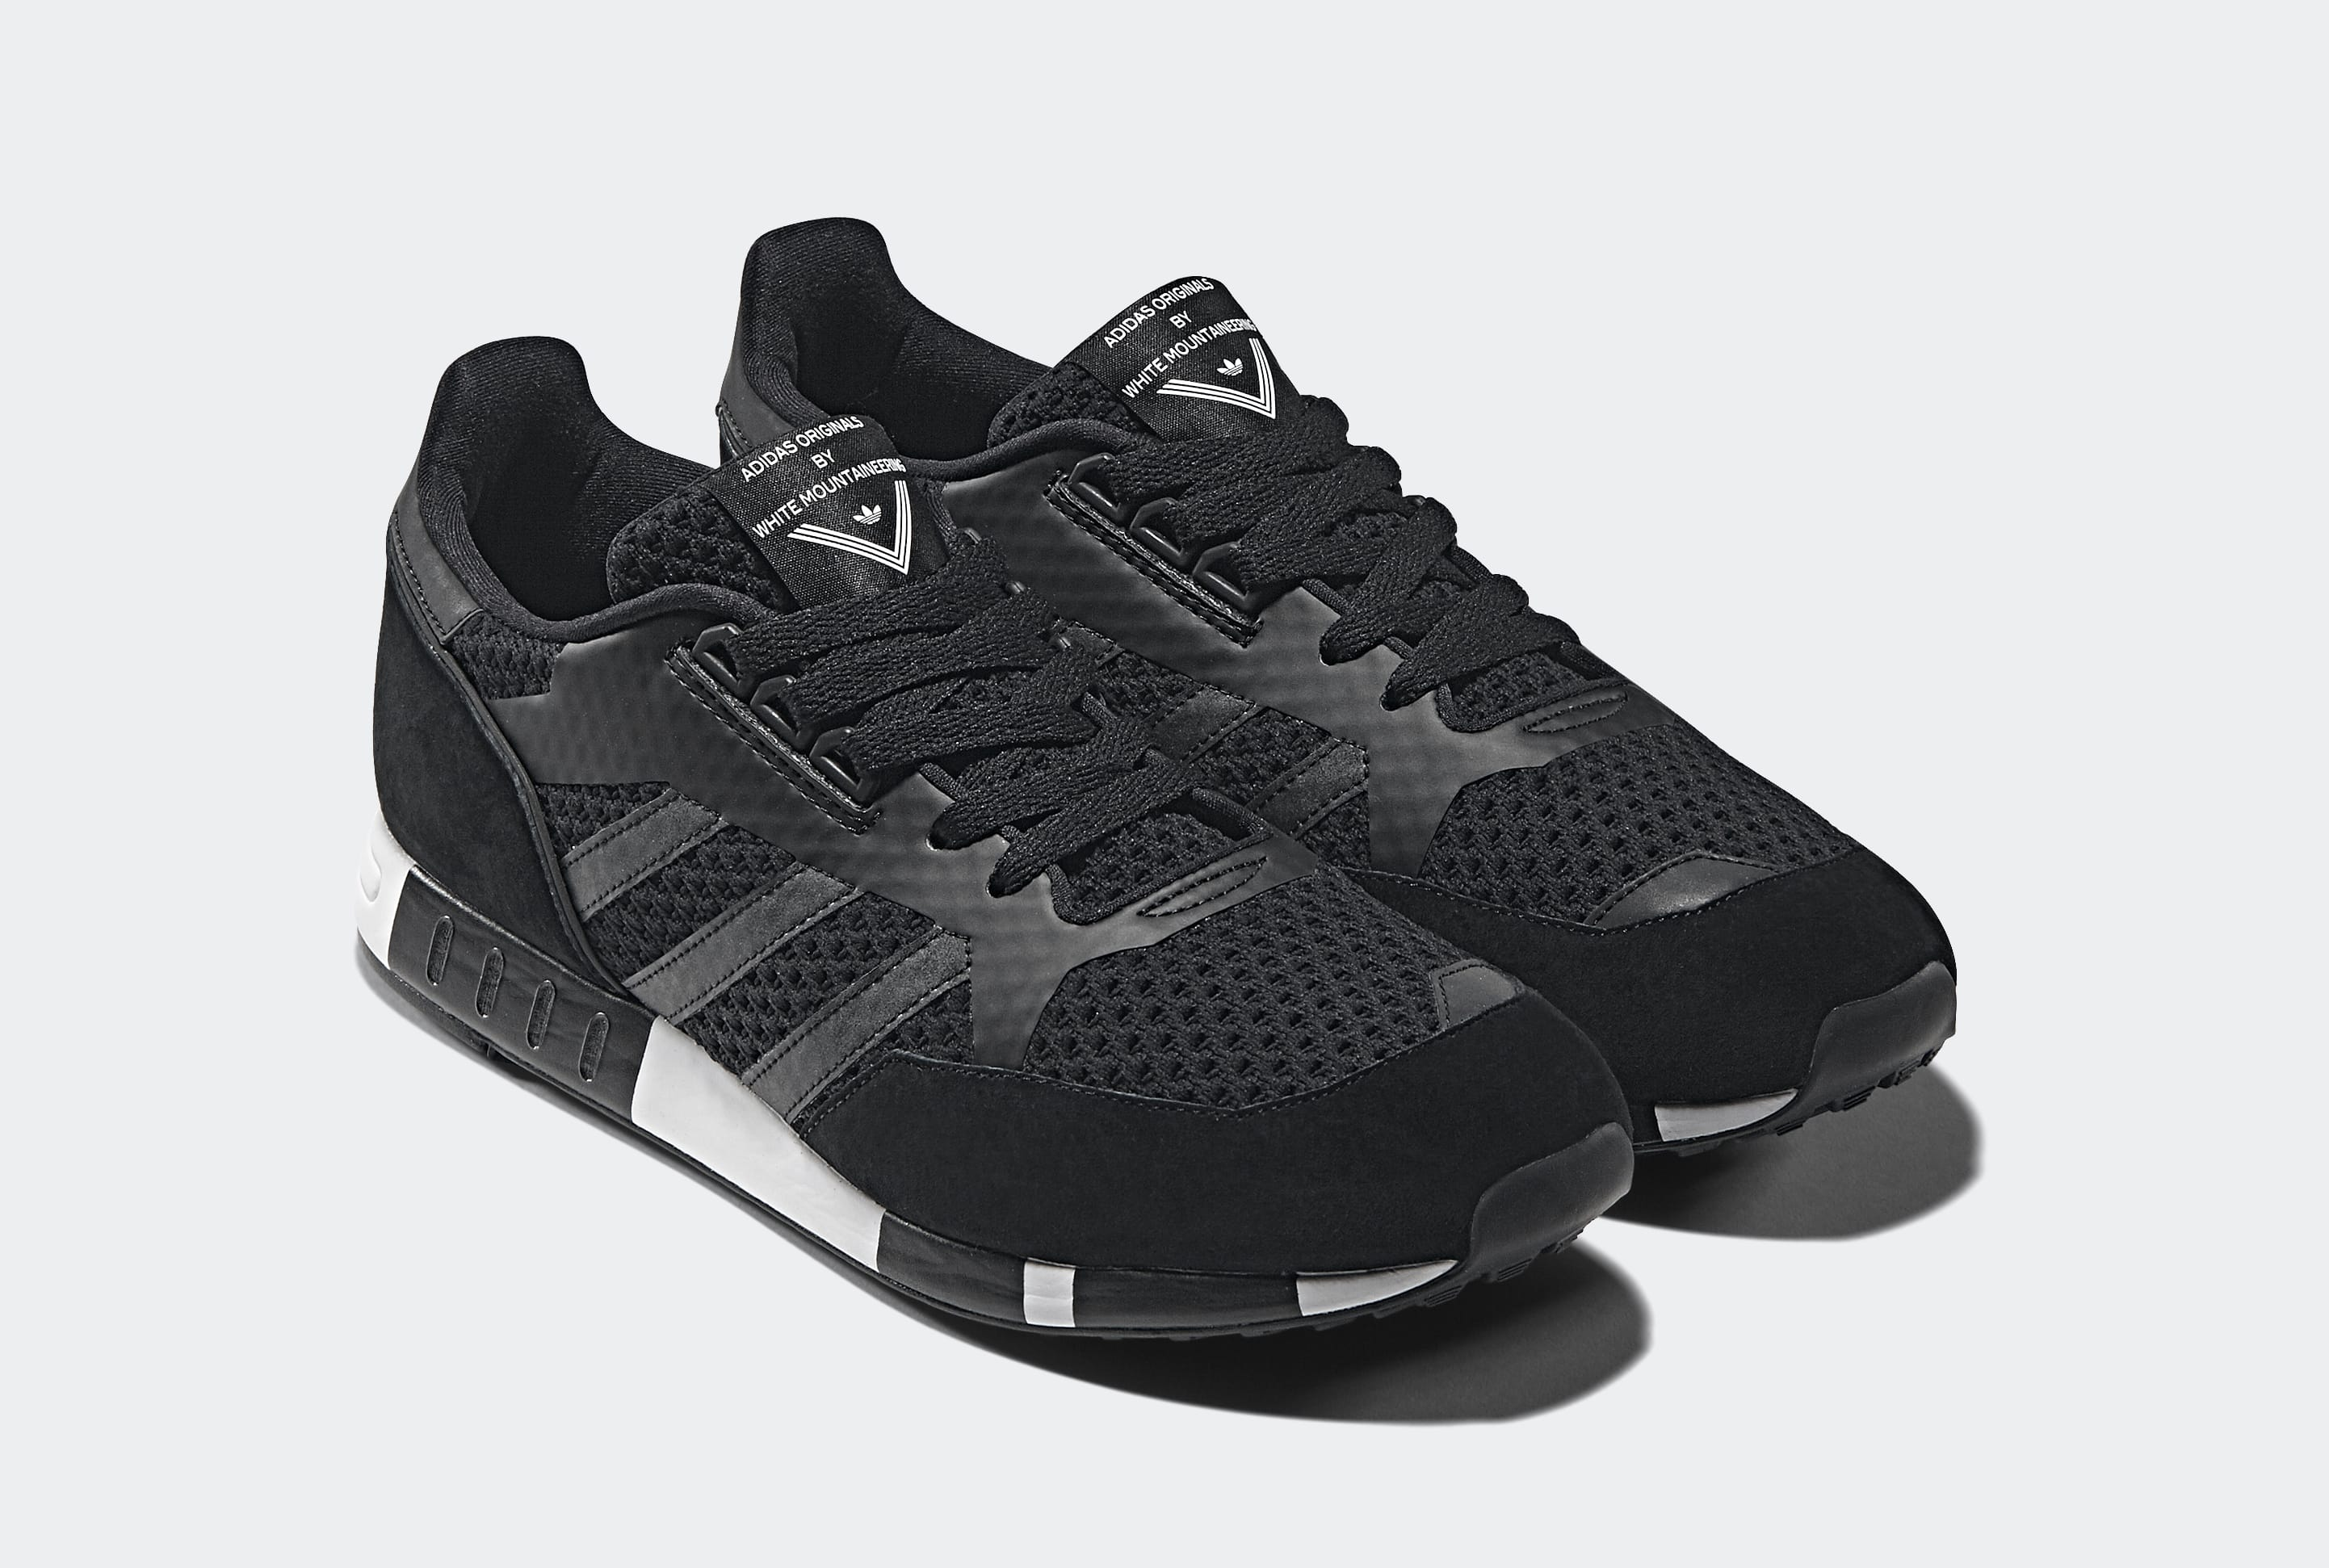 Adidas by White Mountaineering Boston Super Primeknit sneakers - Black Footlocker Pictures Cheap Price Free Shipping For Nice Outlet Get Authentic Cheap Pre Order EX7hFd